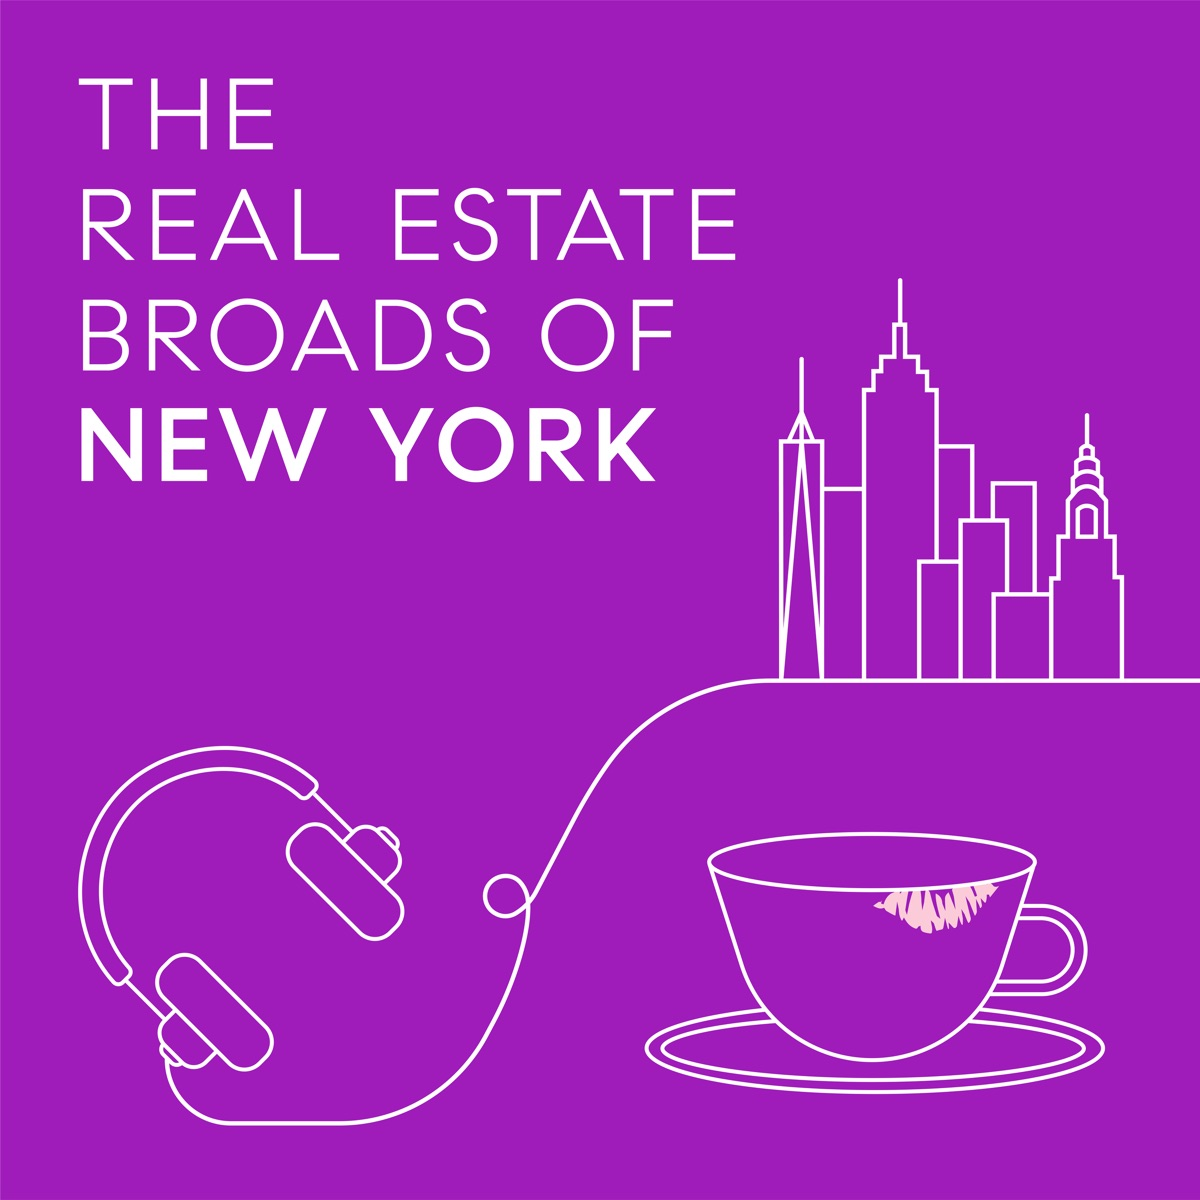 The Real Estate Broads of New York